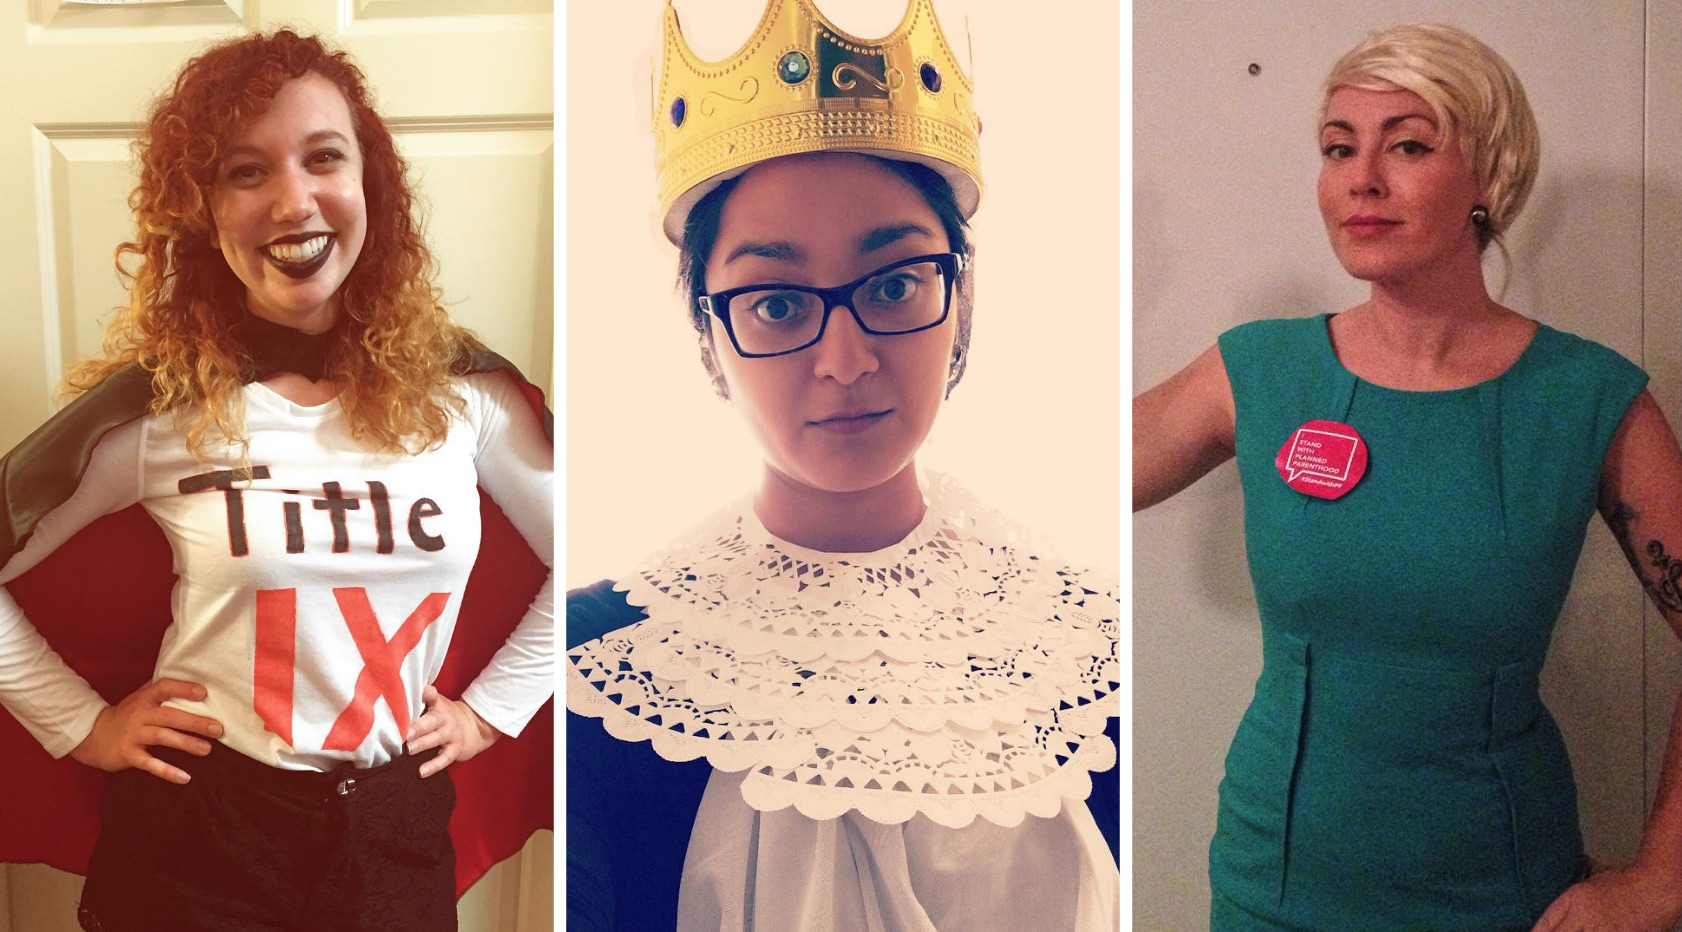 17 Instagram accounts showcase how important feminism is in